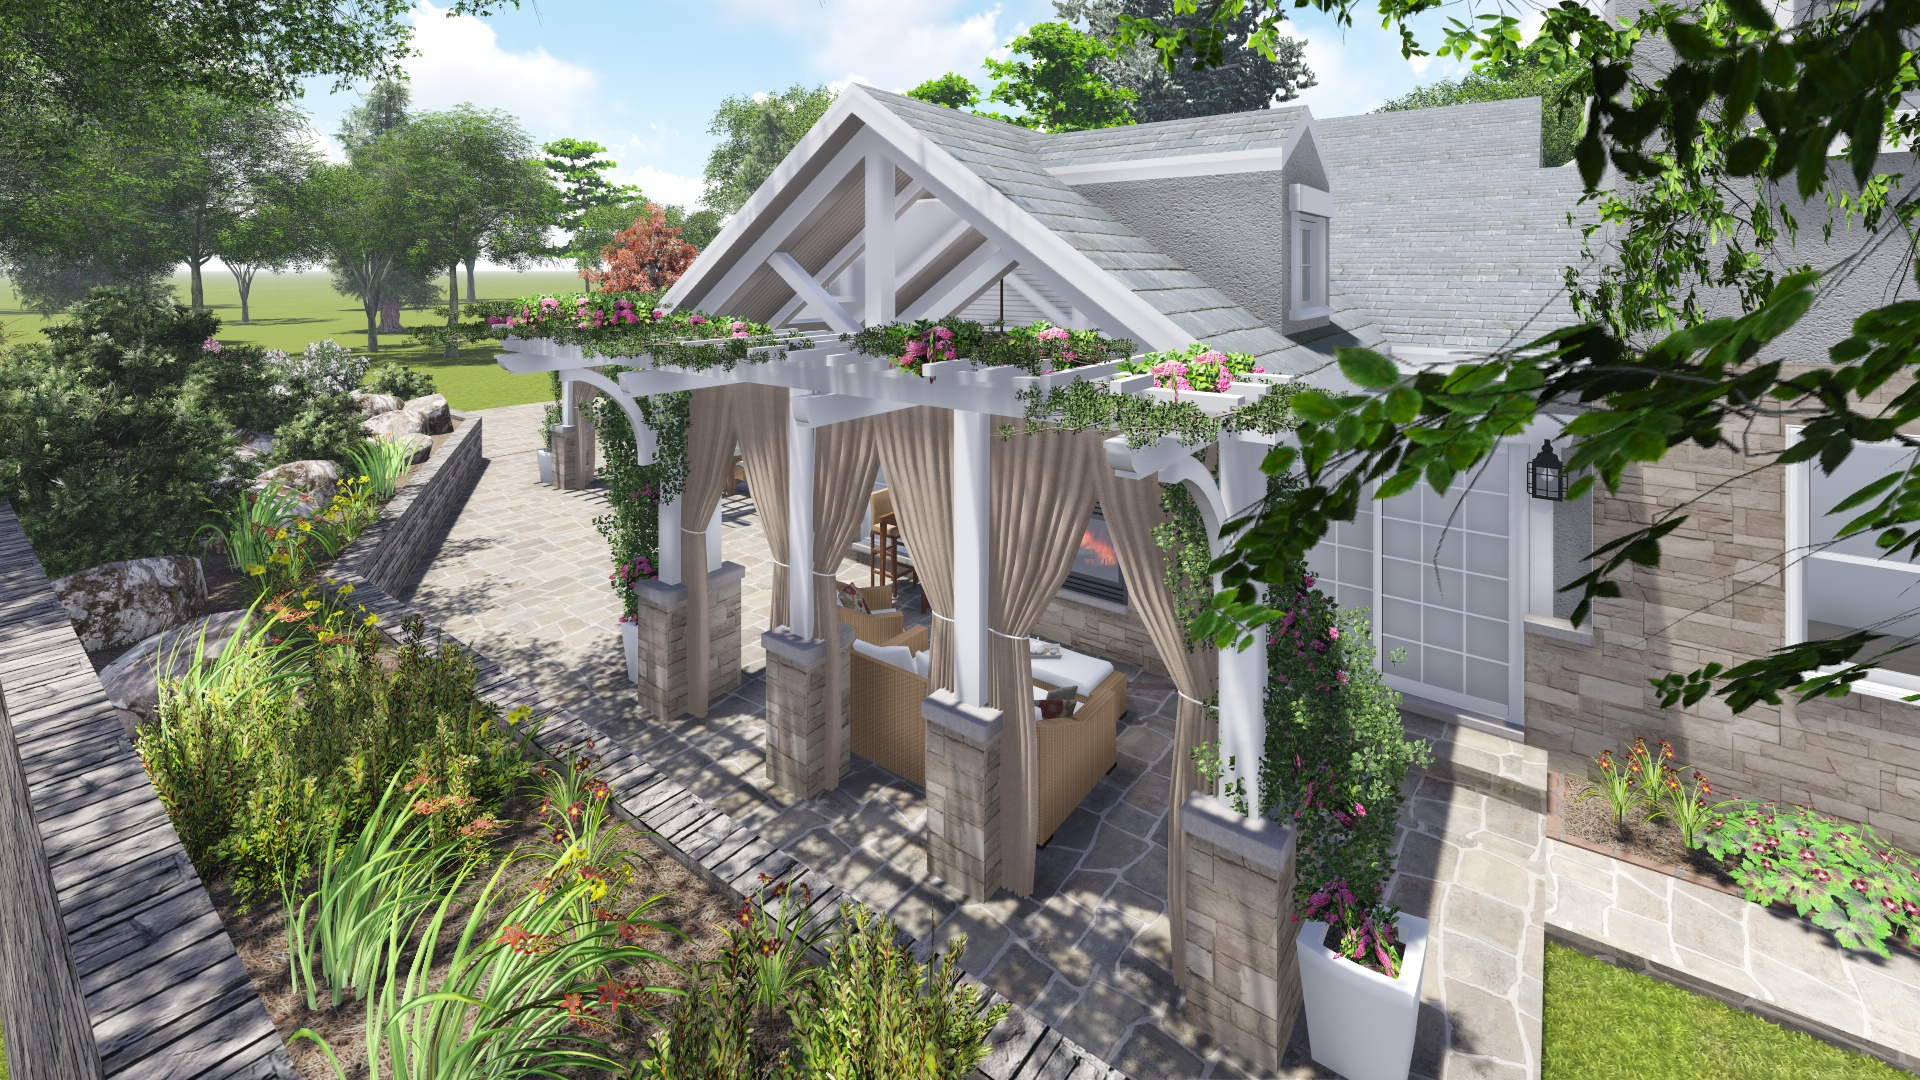 PROCESS: New side porch design option